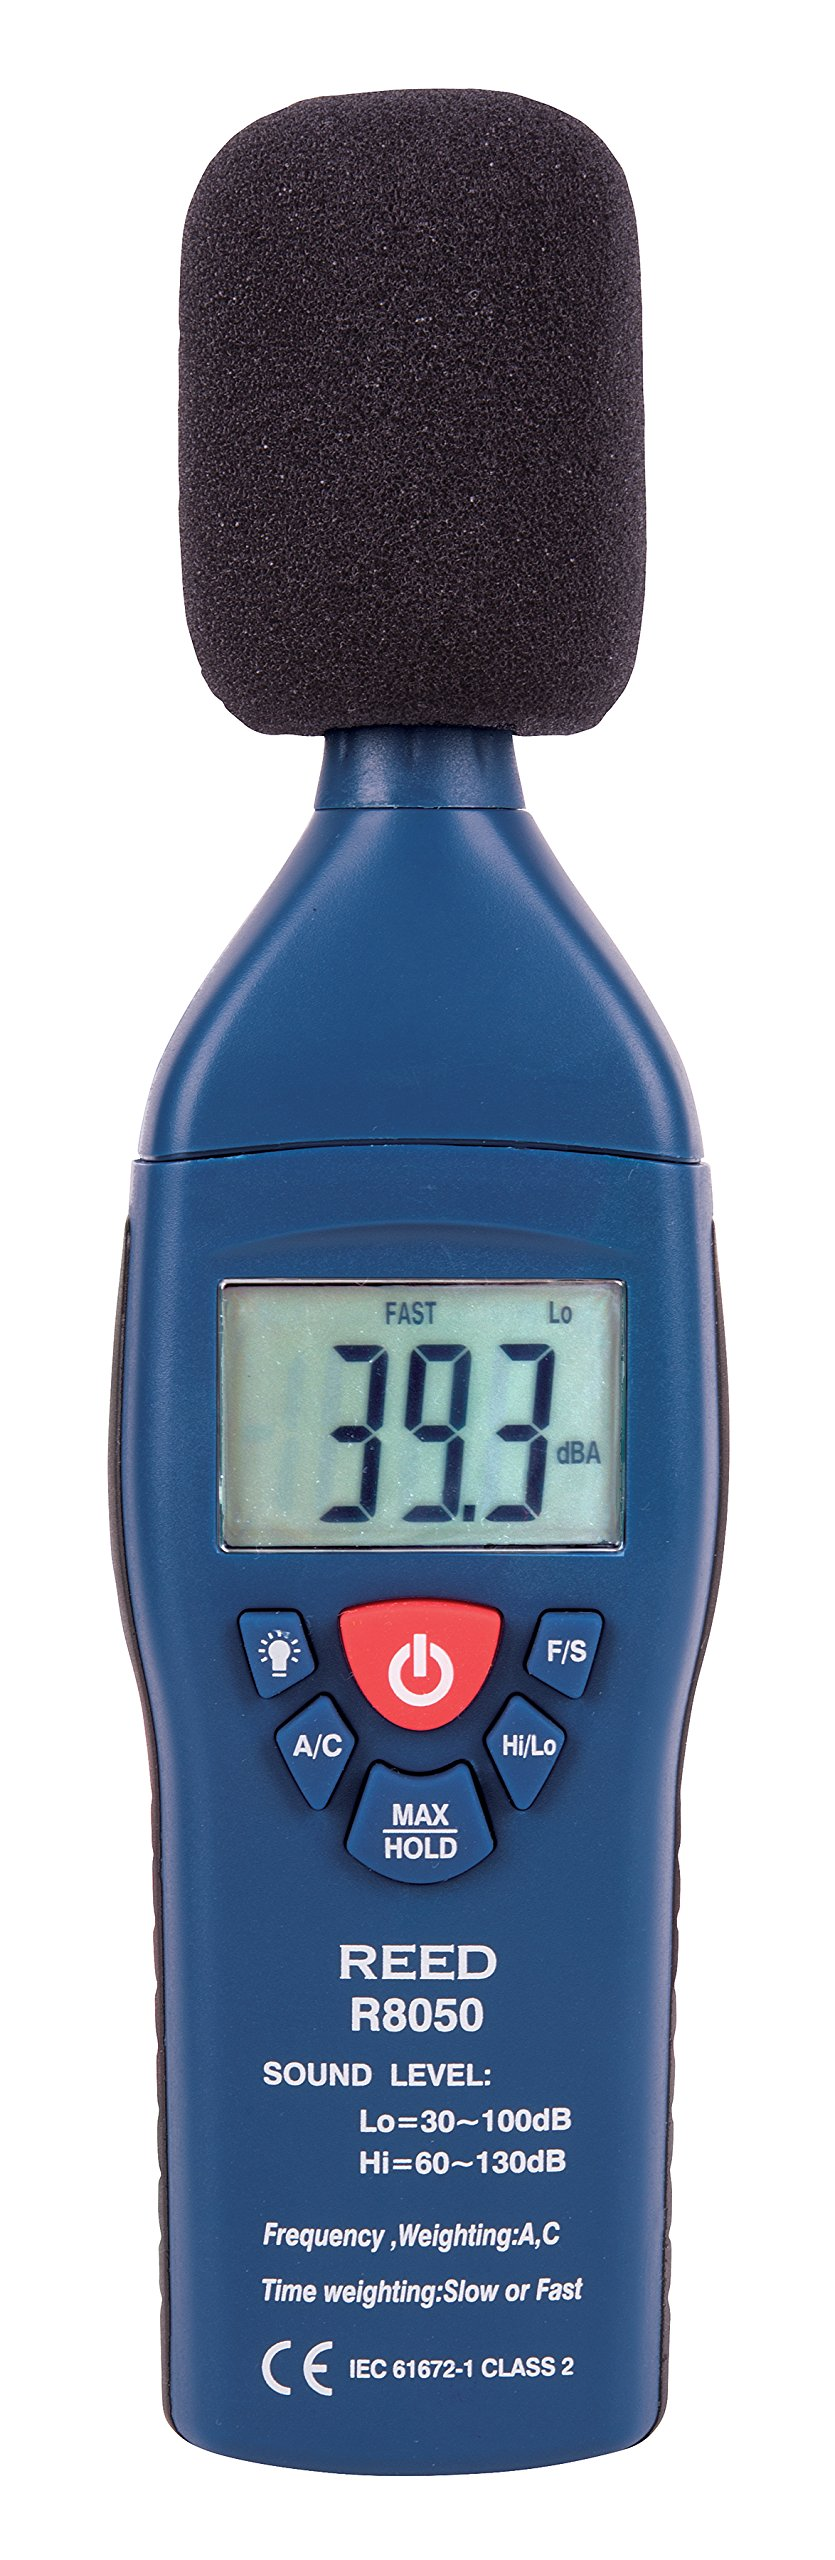 REED Instruments R8050 Sound Level Meter, Type 2, 30-100 and 60-130dB, +/-1.4 dB Accuracy by REED Instruments